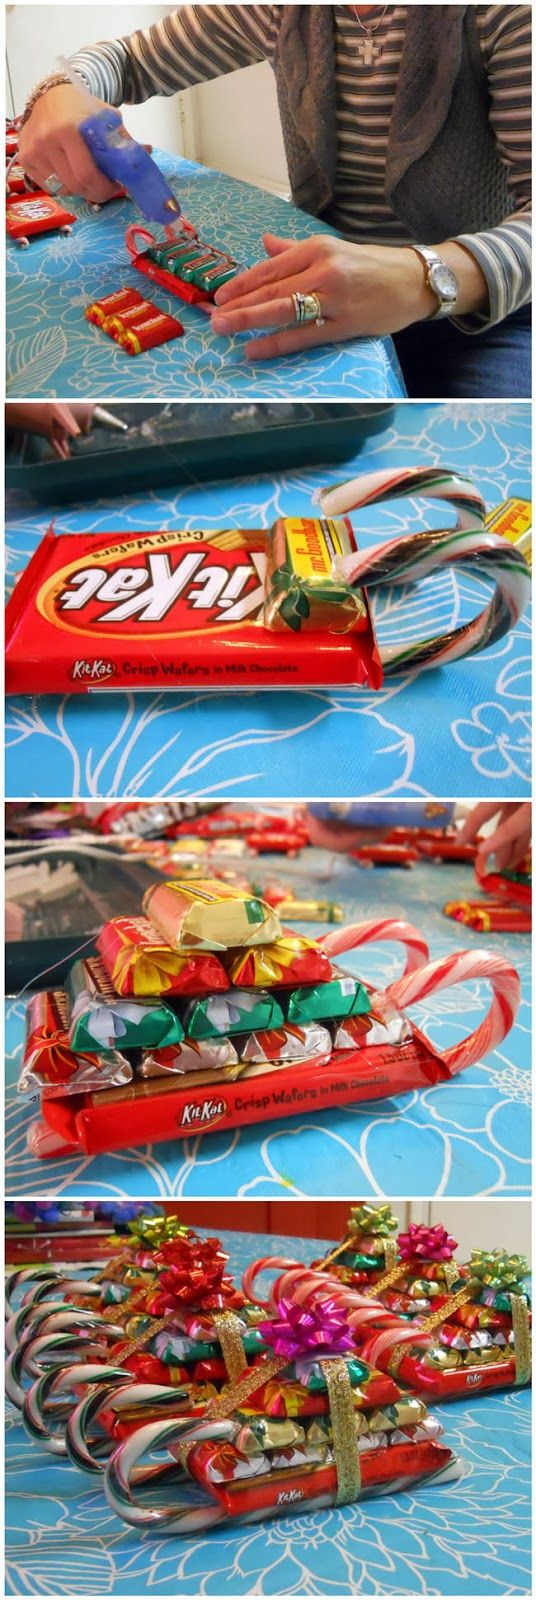 Candy sleighs!!! Brilliant Christmas gift ideas